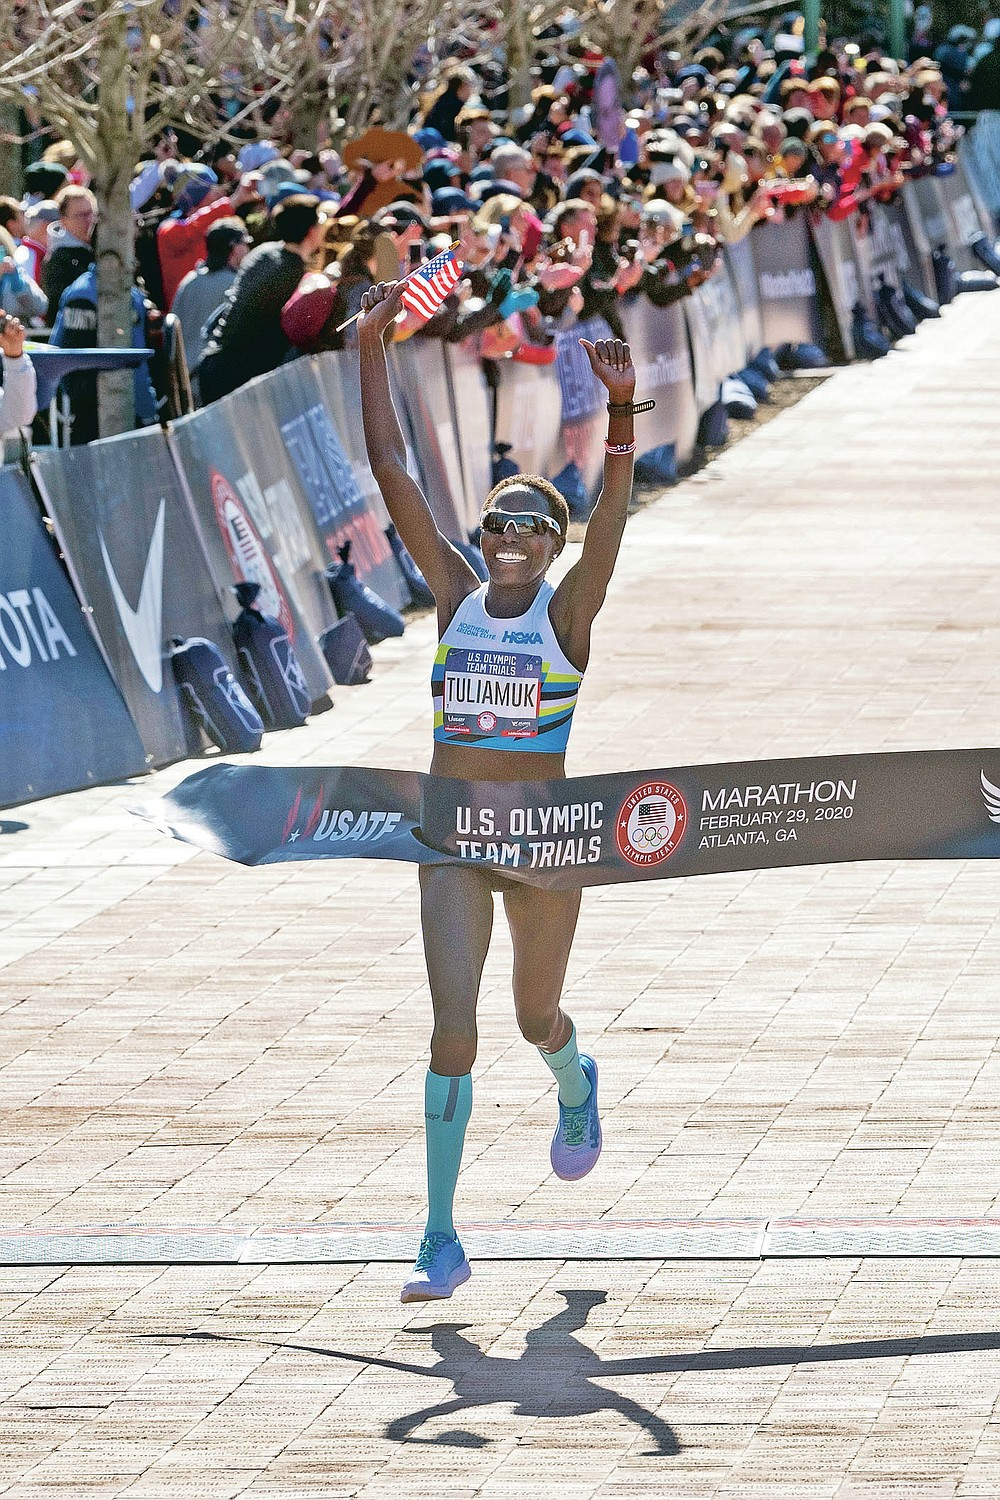 FILE - Aliphine Tuliamuk crosses the finish line to win the women's U.S. Olympic marathon trials, Saturday, Feb. 29, 2020, in Atlanta. When the Tokyo Summer Games were postponed, U.S. Olympic marathon trials champion Aliphine Tuliamuk decided with her fiance last year to have a baby instead of waiting. (AP Photo/John Amis, File)